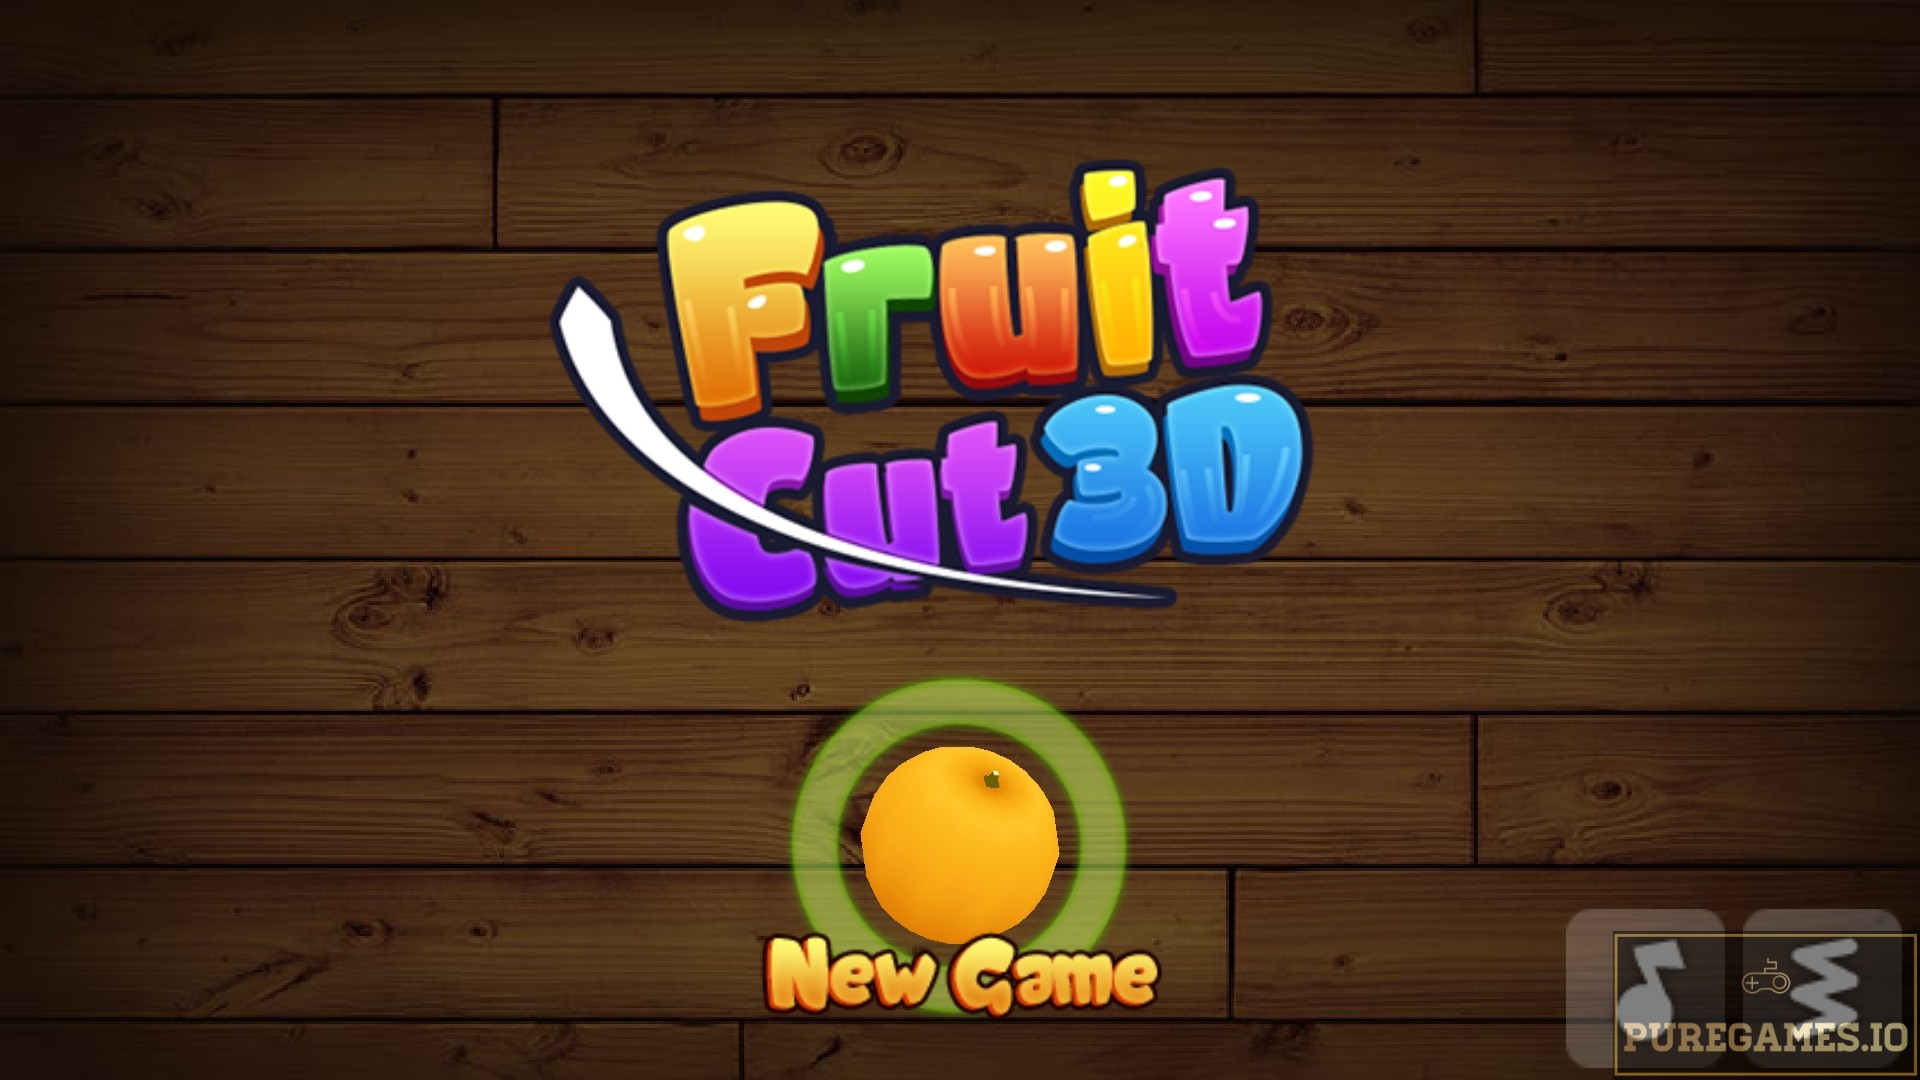 Download Fruit Cut 3D MOD APK - For Android/iOS 17